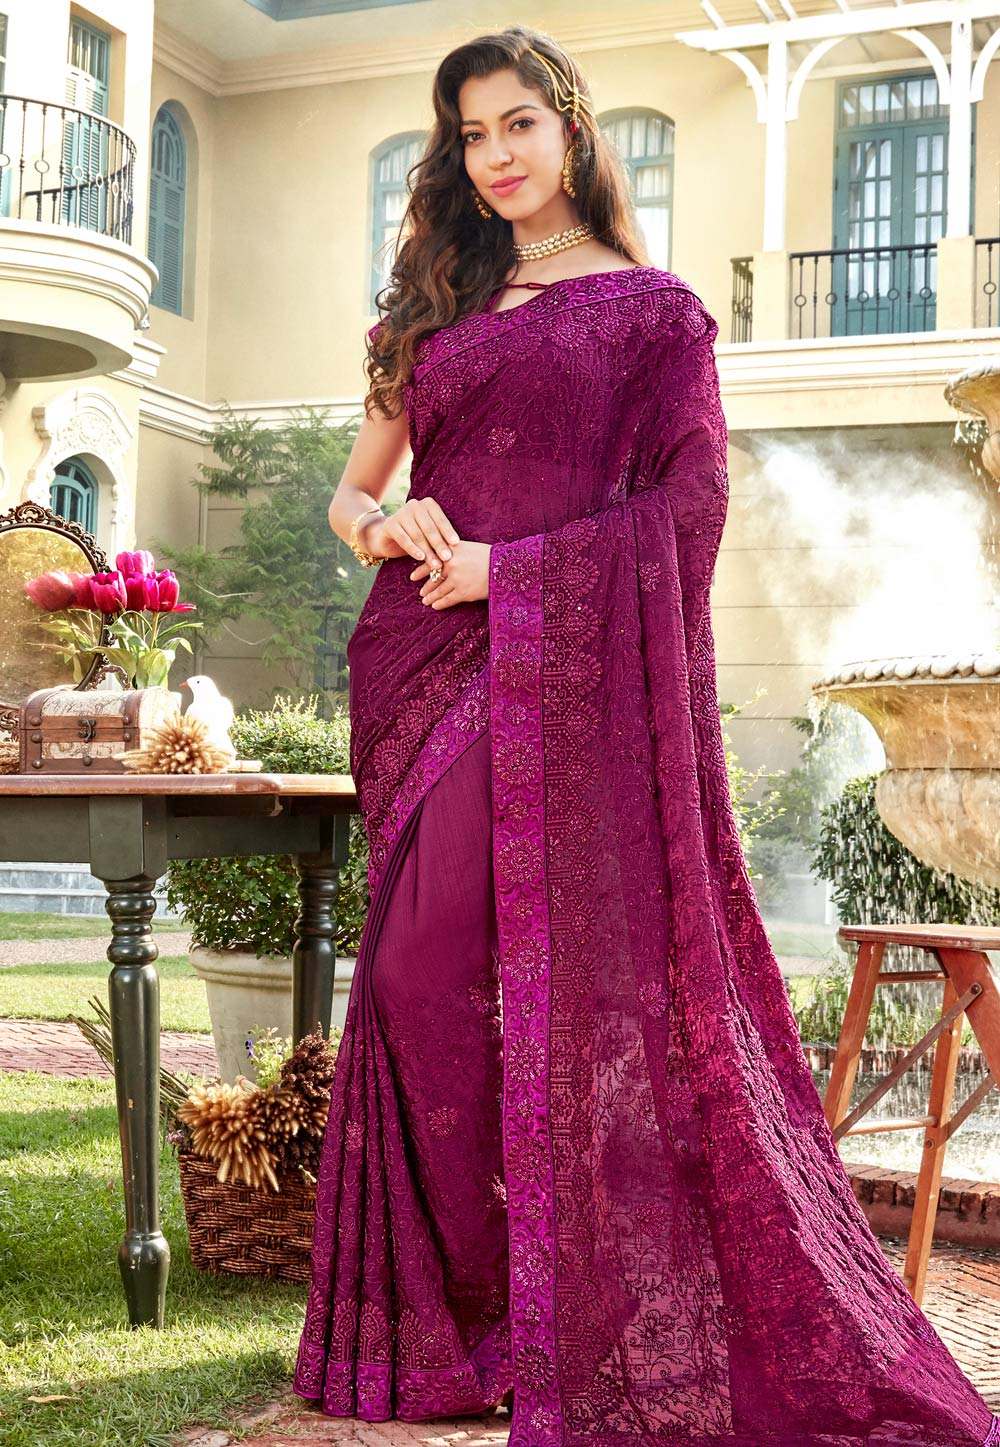 b83e11b3a0 Buy Purple Chiffon Embroidered Saree With Blouse 172652 with blouse online  at lowest price from vast